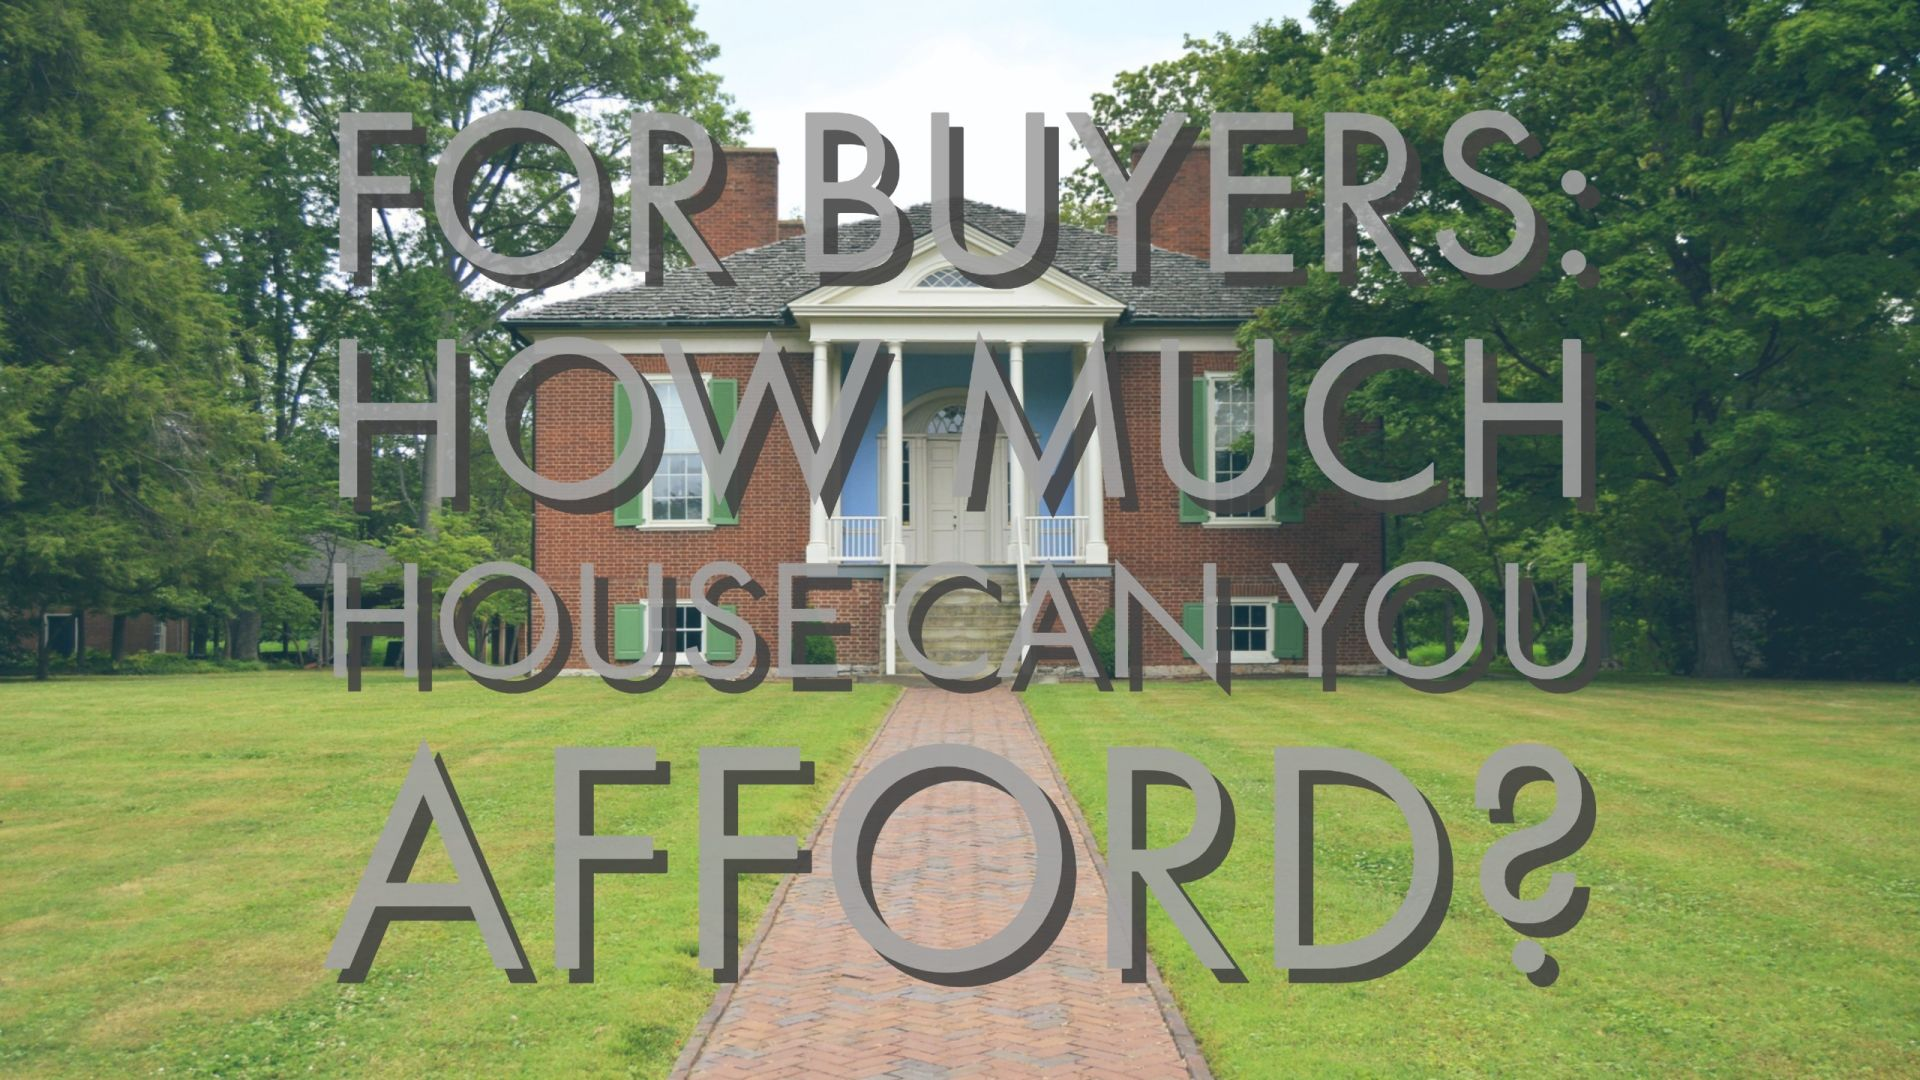 For Buyers: How Much House Can You Afford?